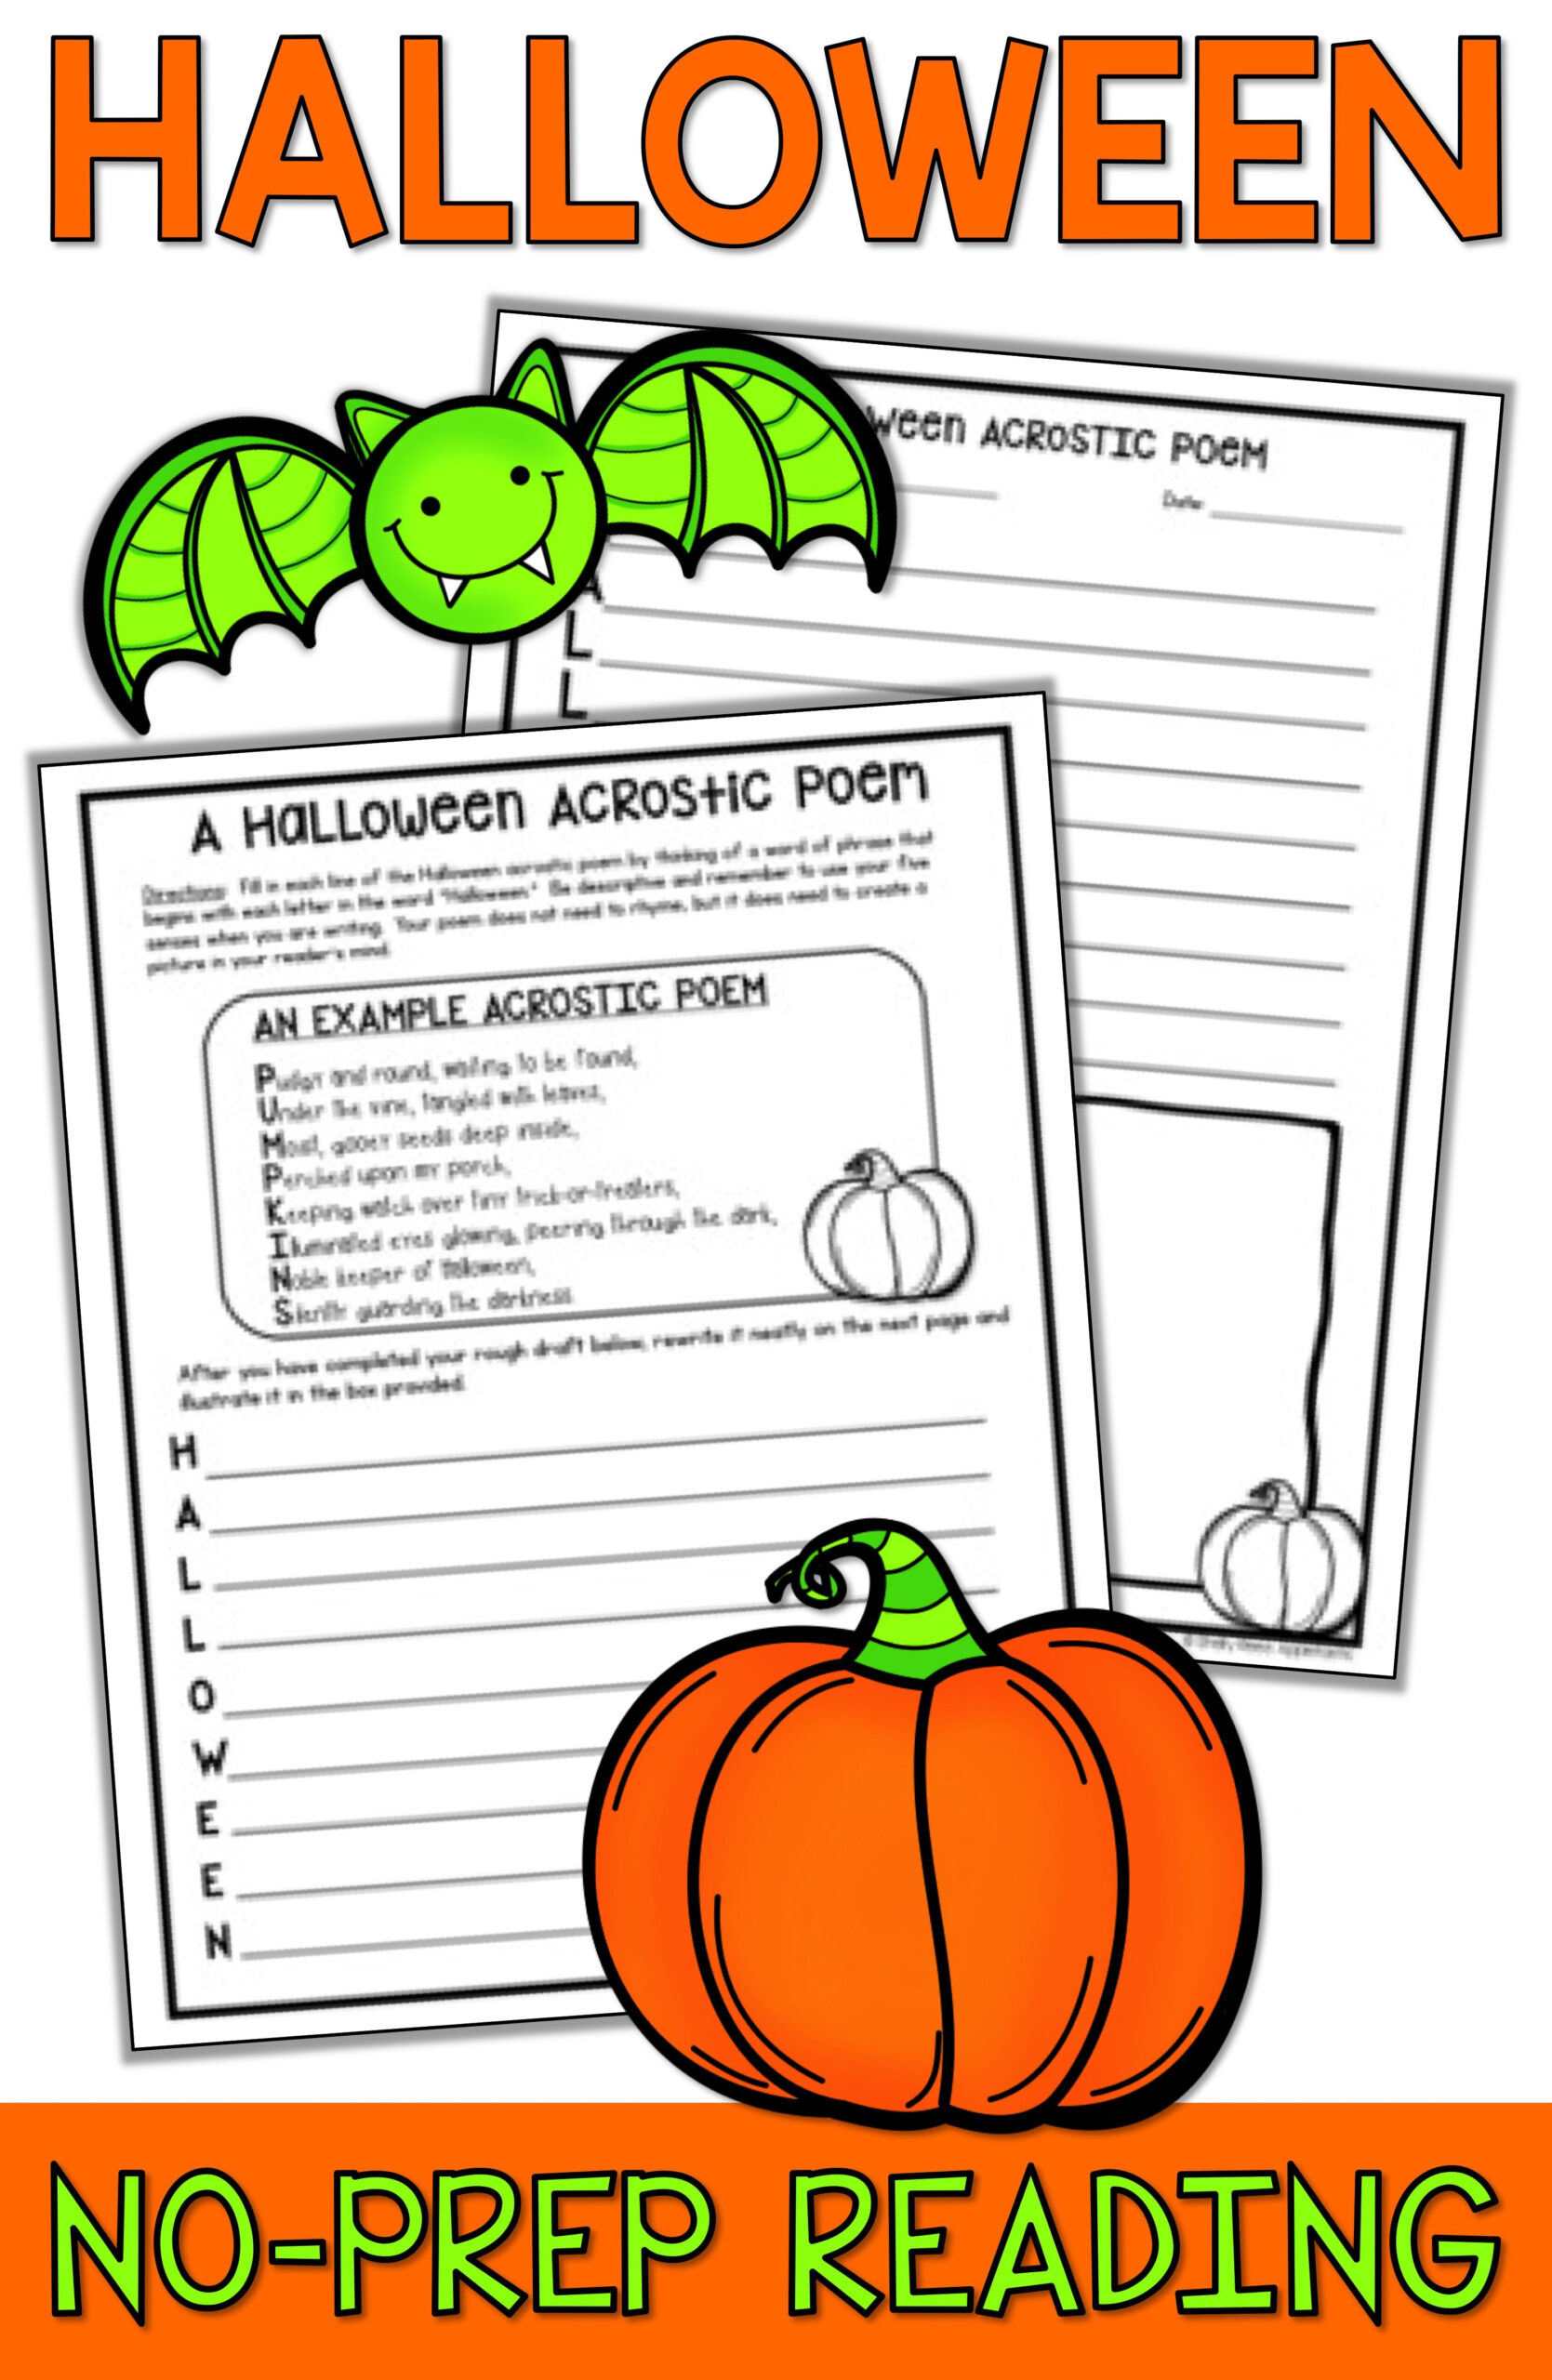 Halloween Reading Worksheets Middle School